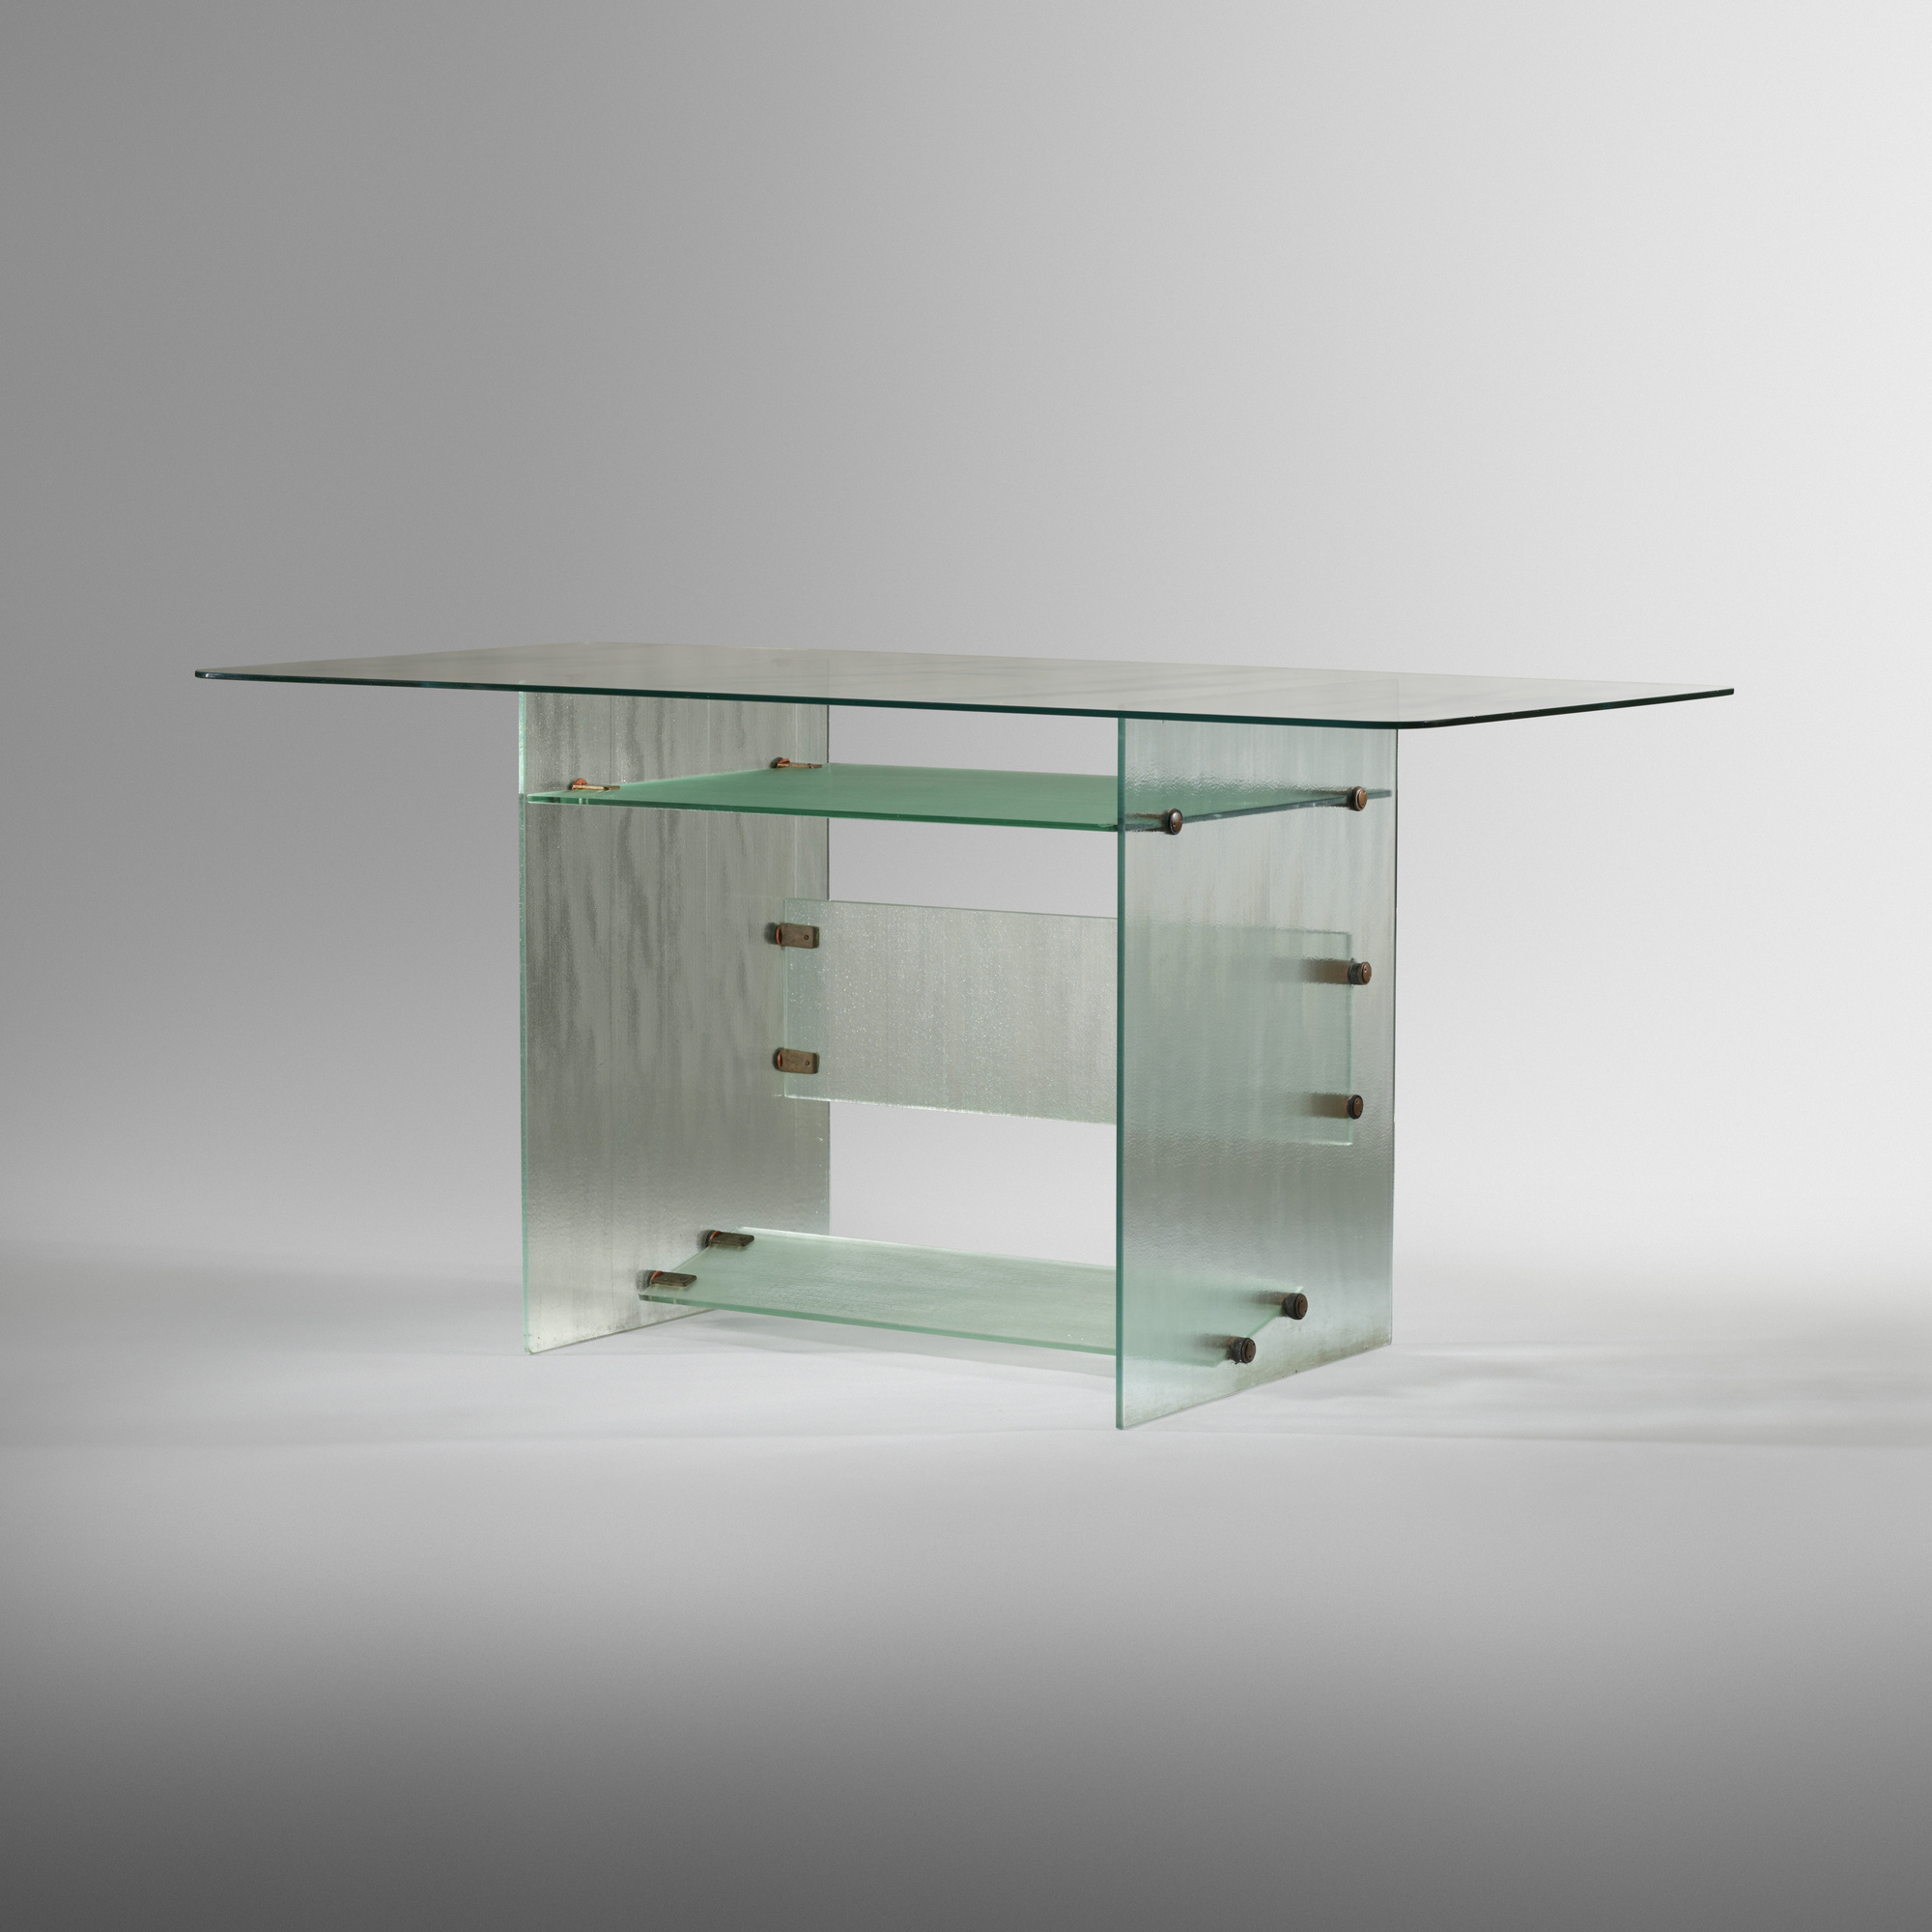 212: Gio Ponti, attribution / desk (1 of 4)